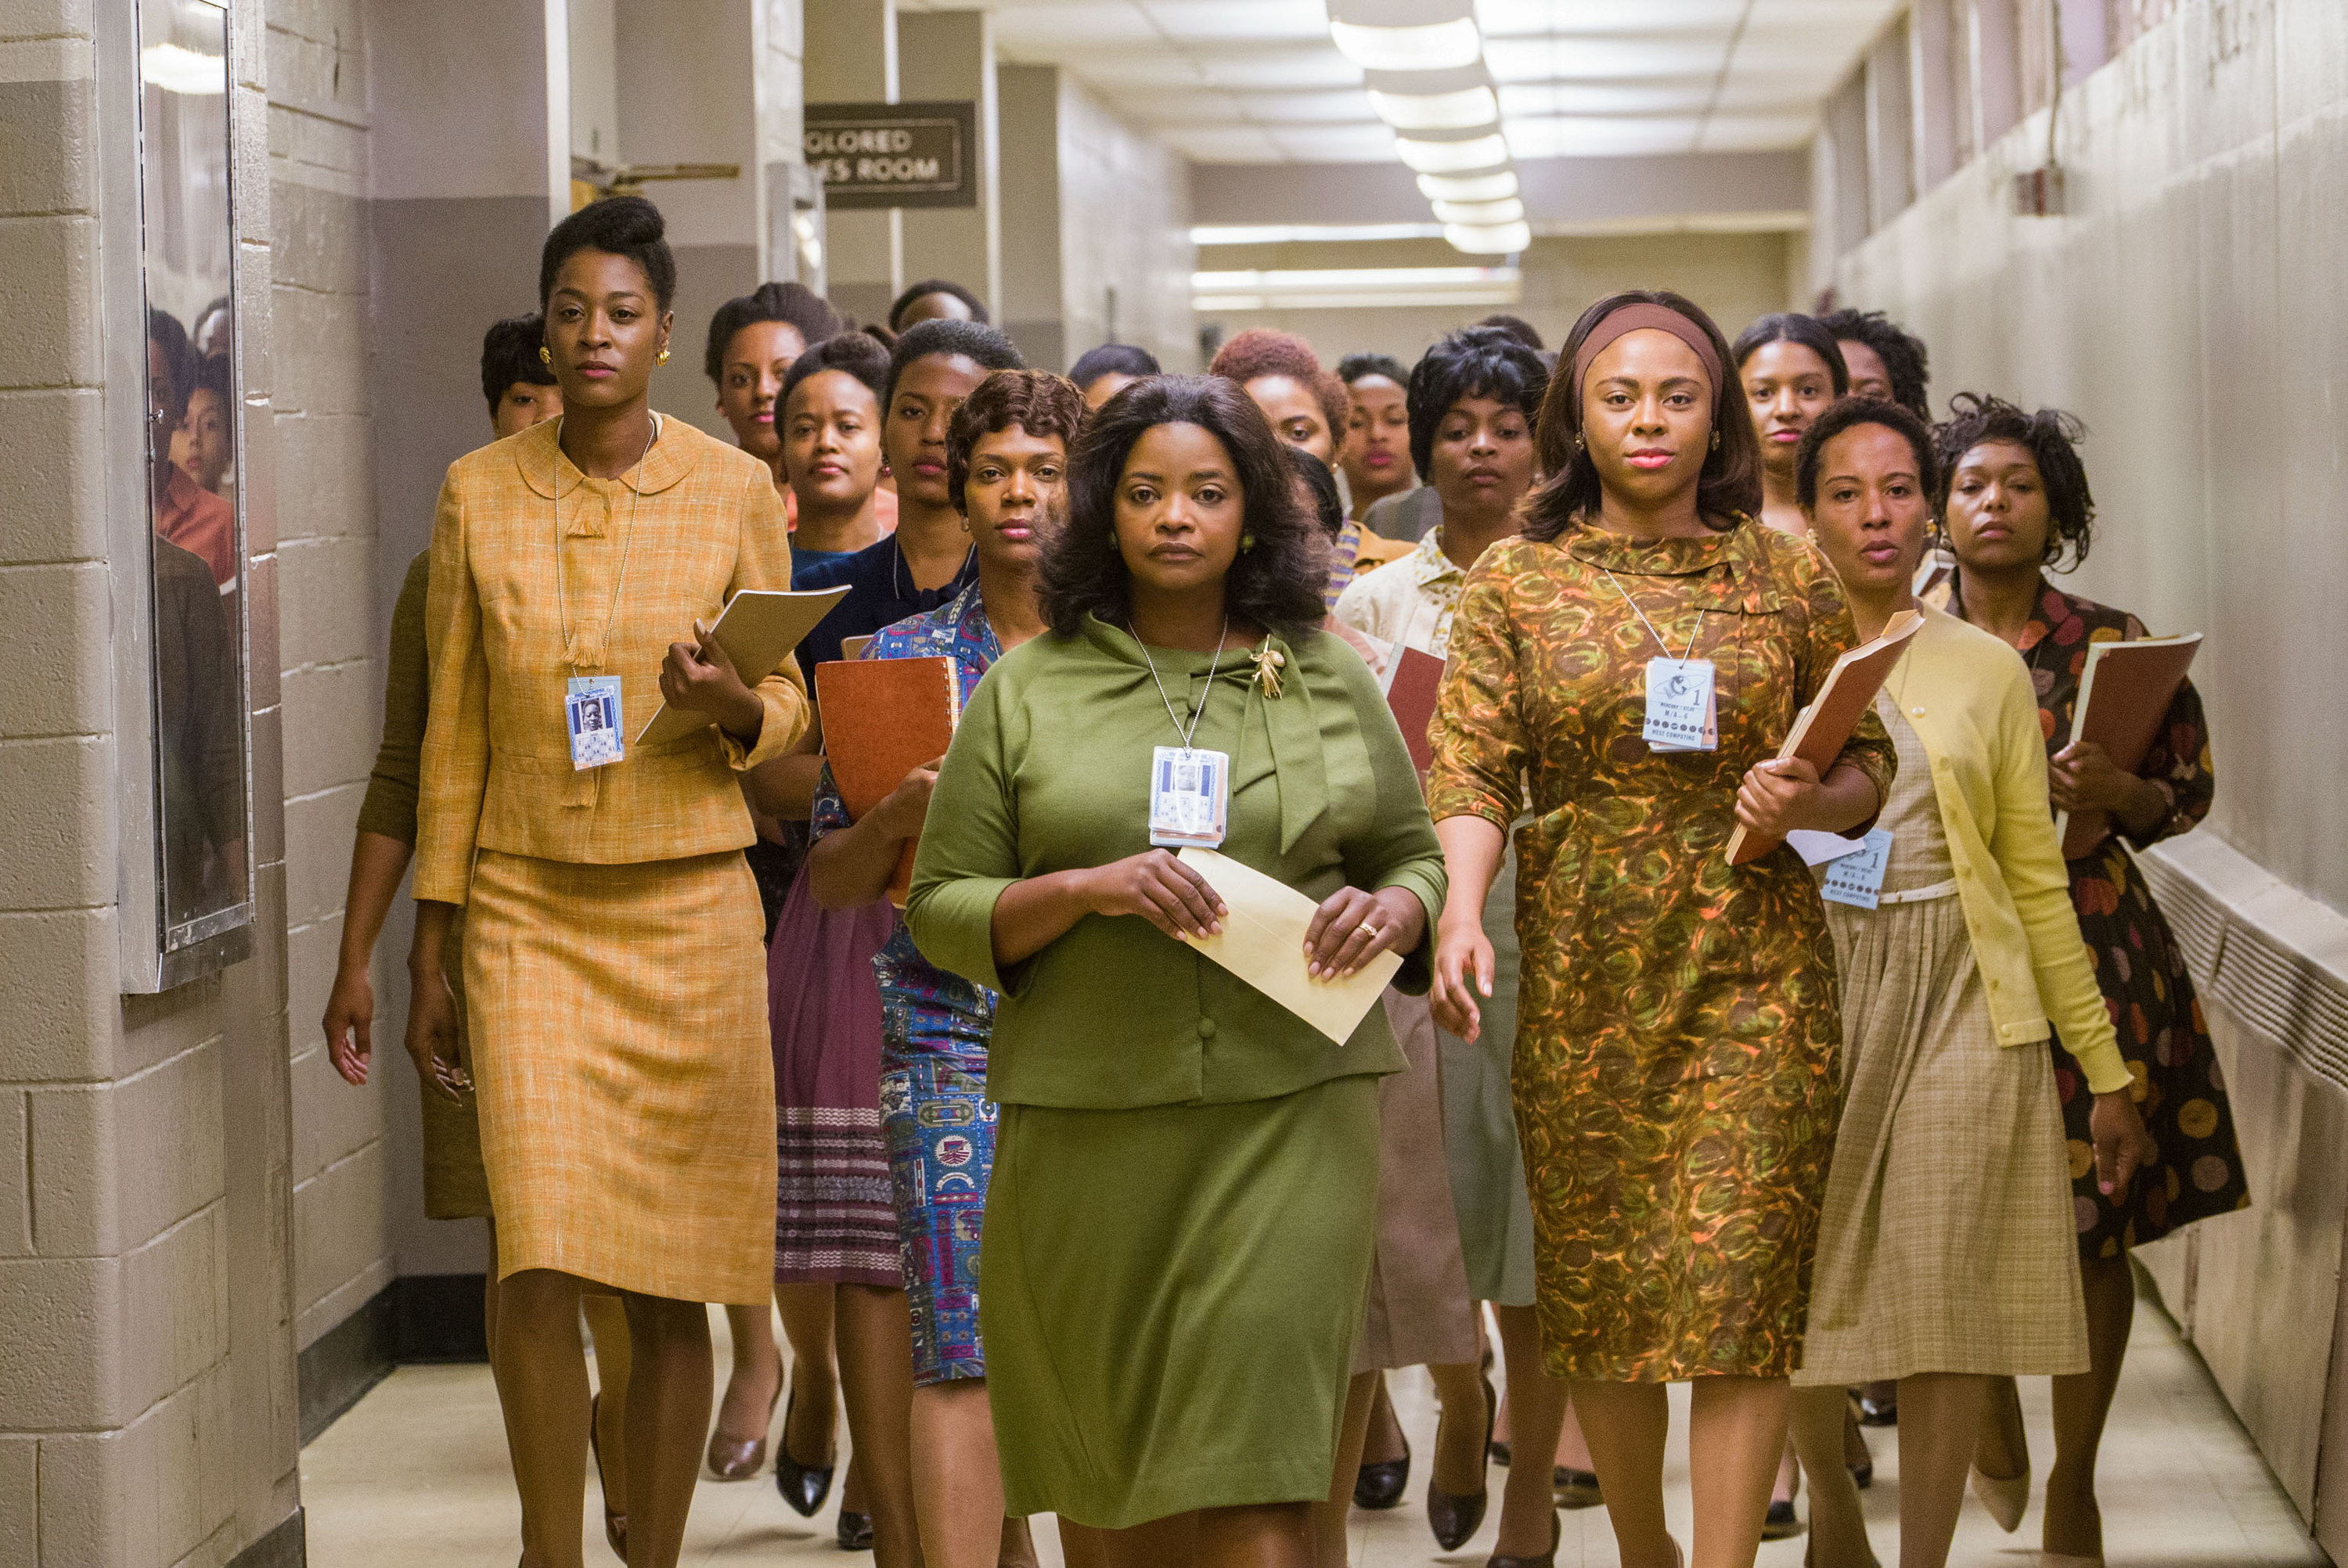 Octavia Spencer leads a group of Black women down a hallway